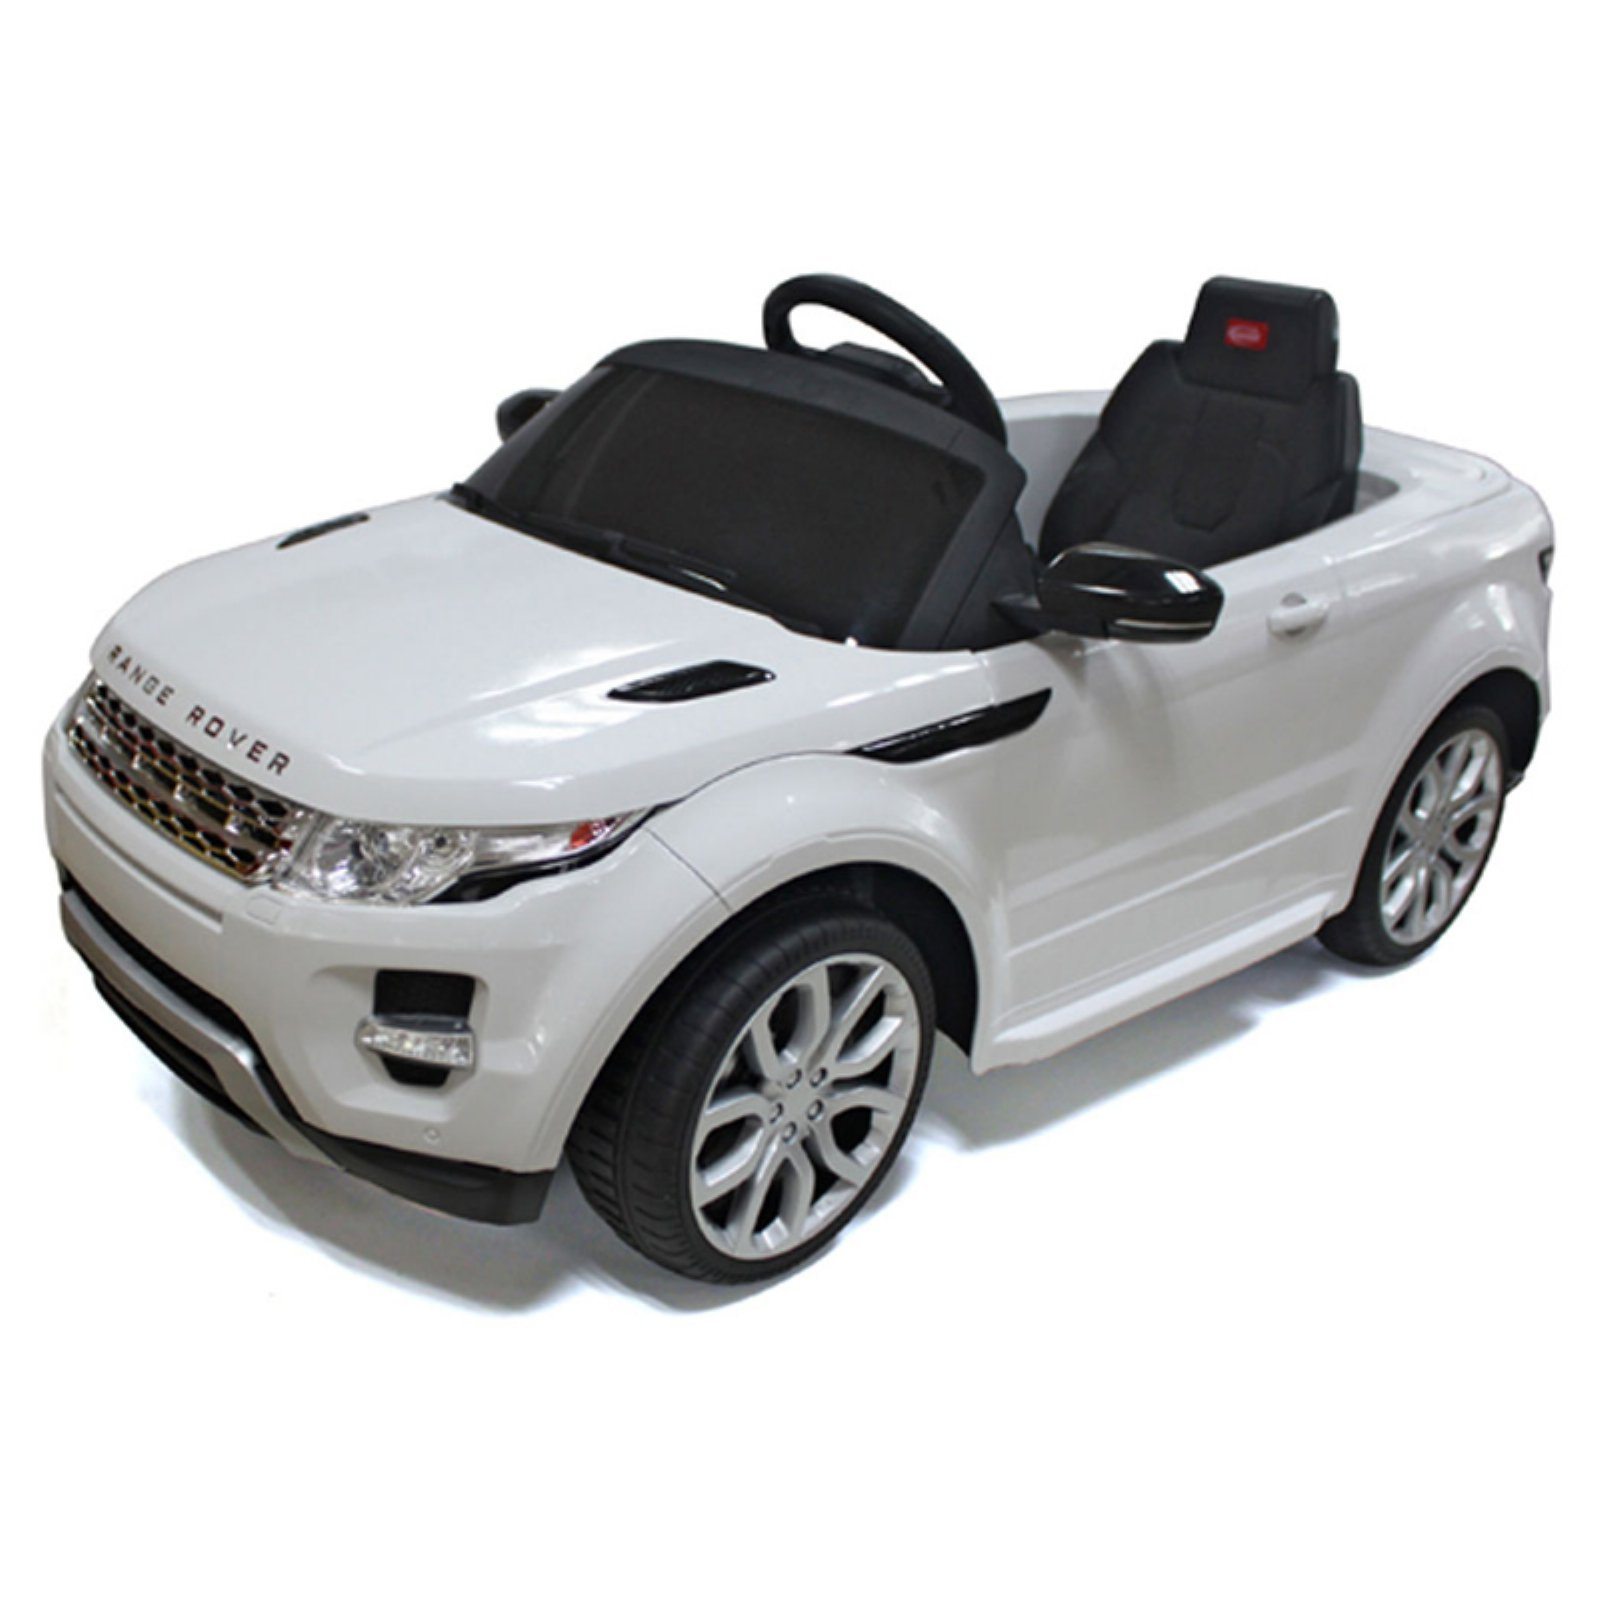 Rastar Land Rover Evoque Battery Powered Riding Toy Walmart Com